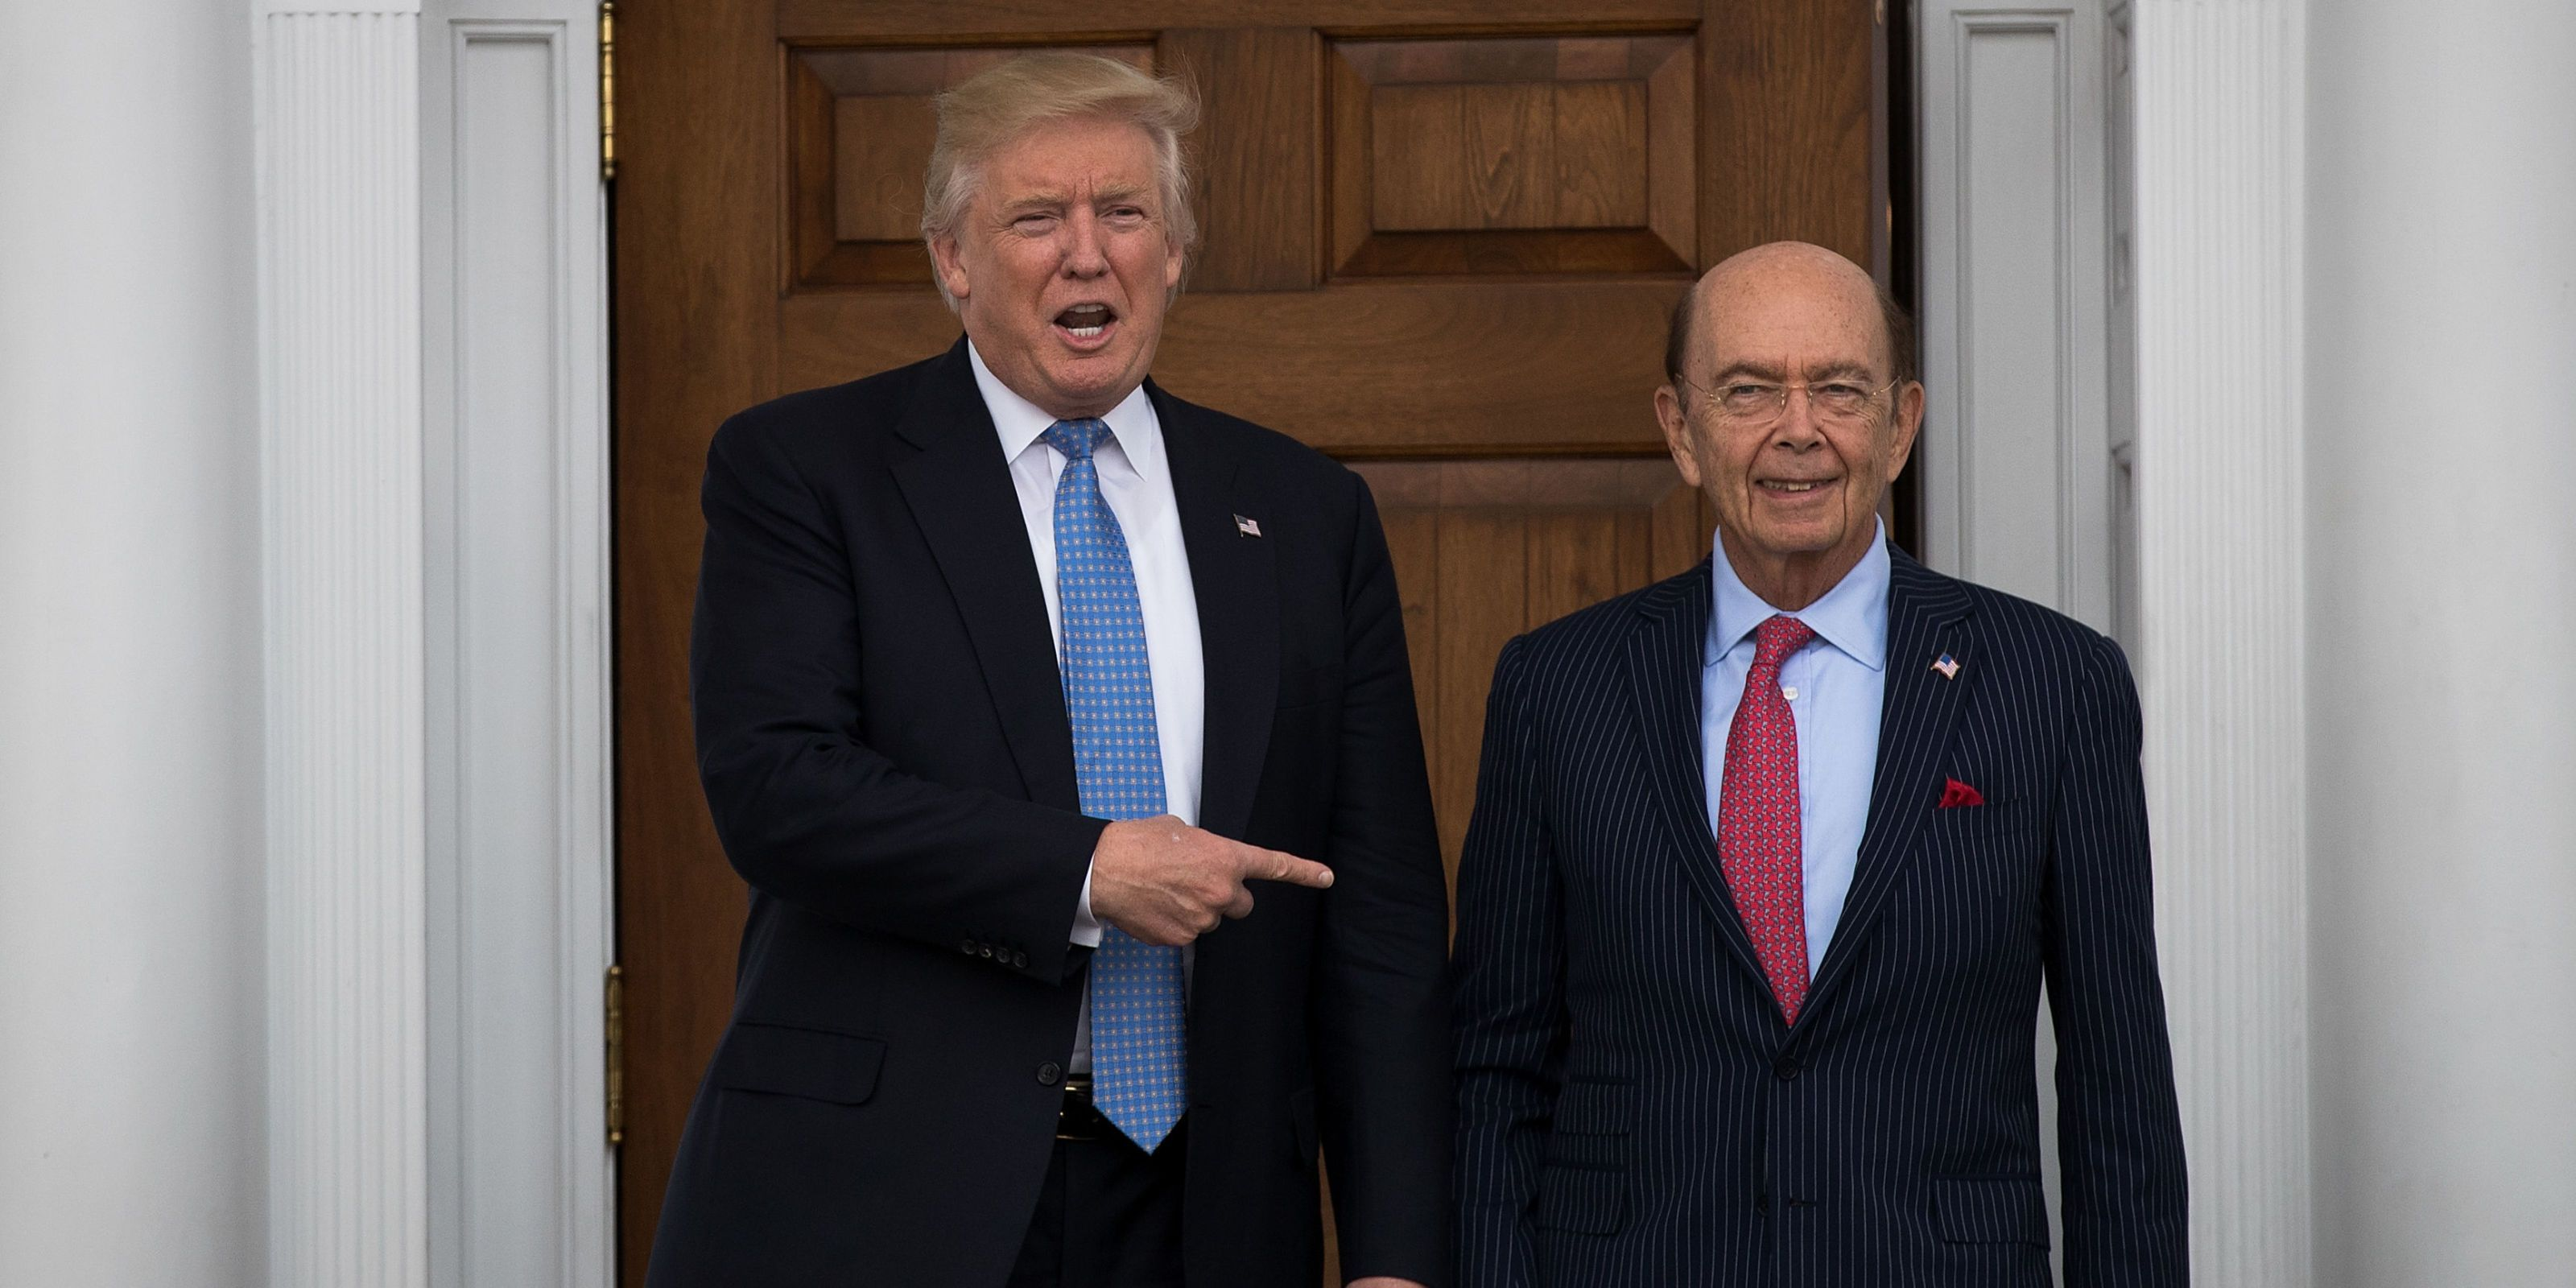 Donald Trump Cabinet Could Be the Richest Ever - Donald Trump ...